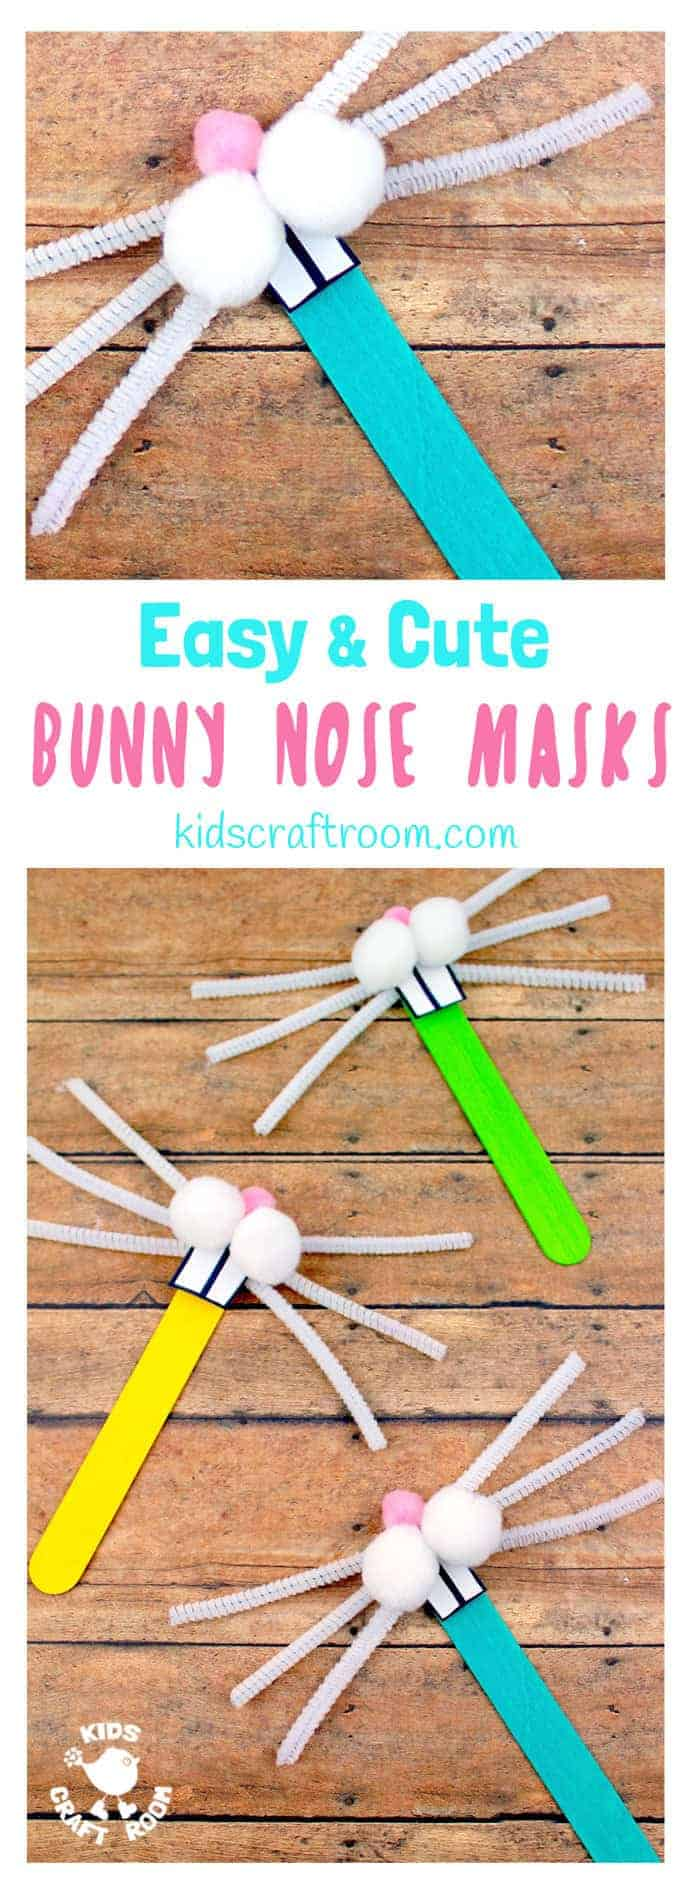 Totally cute and easy Bunny Nose Masks - so fun for Easter imaginative play. You and the kids can make these rabbit masks in minutes and they're super fun for popping into Easter baskets and sharing with friends. #Easter #EasterCrafts #Rabbit #bunny #EasterBunny #rabbitmasks #eastermasks #bunnymasks #masks #popsiclestickcrafts #springcrafts #kidscrafts #craftsforkids #kidscraftroom